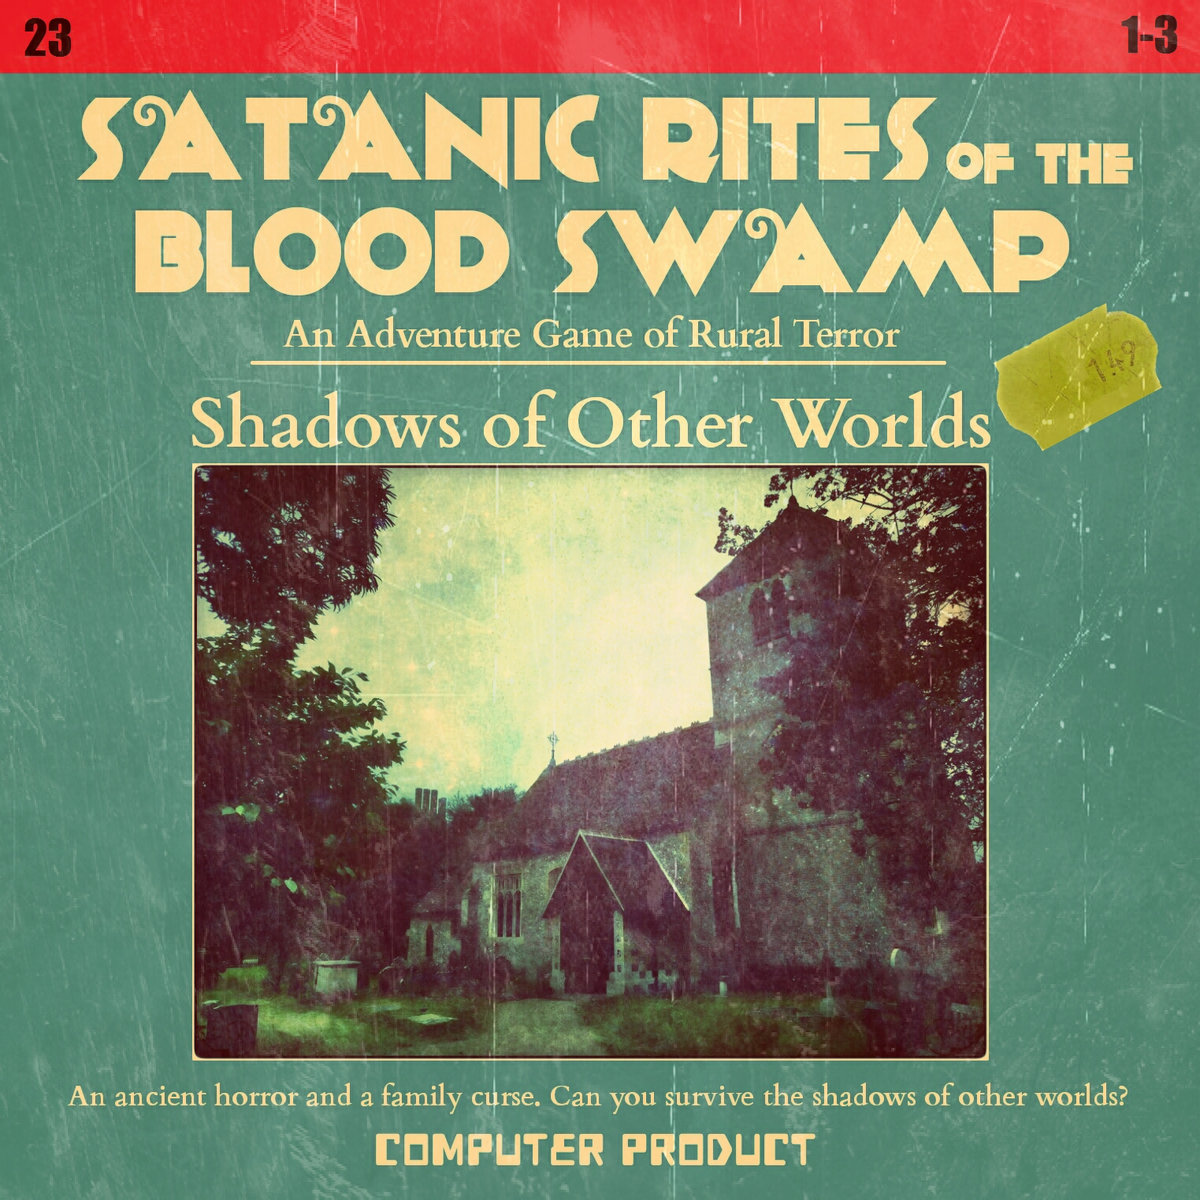 Shadows of Other Worlds | SATANIC RITES OF THE BLOOD SWAMP